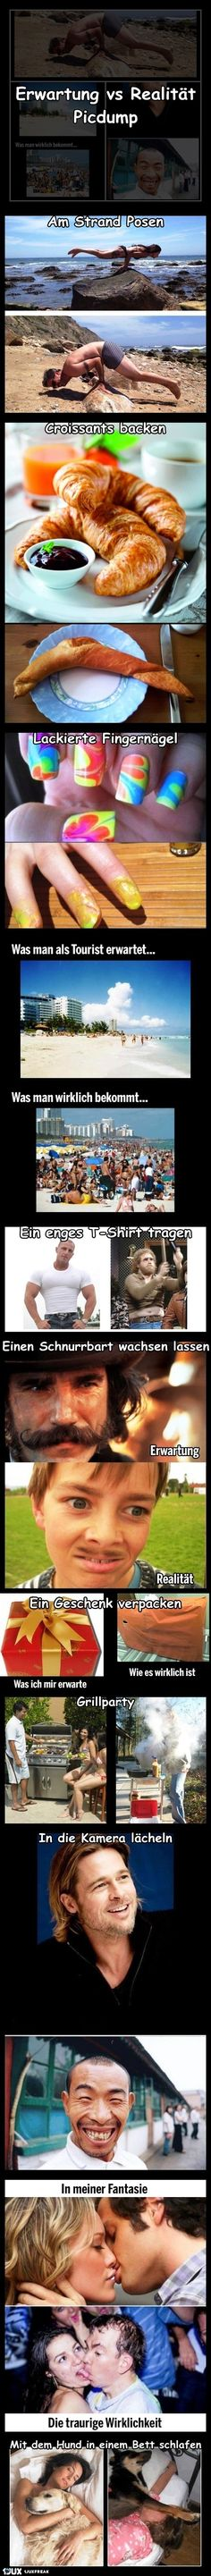 Erwartung vs Realität Comedy Comics, Funny Fails, Funny Memes, Jokes, Lol, Funny People, Just For Fun, True Words, Funny Cute